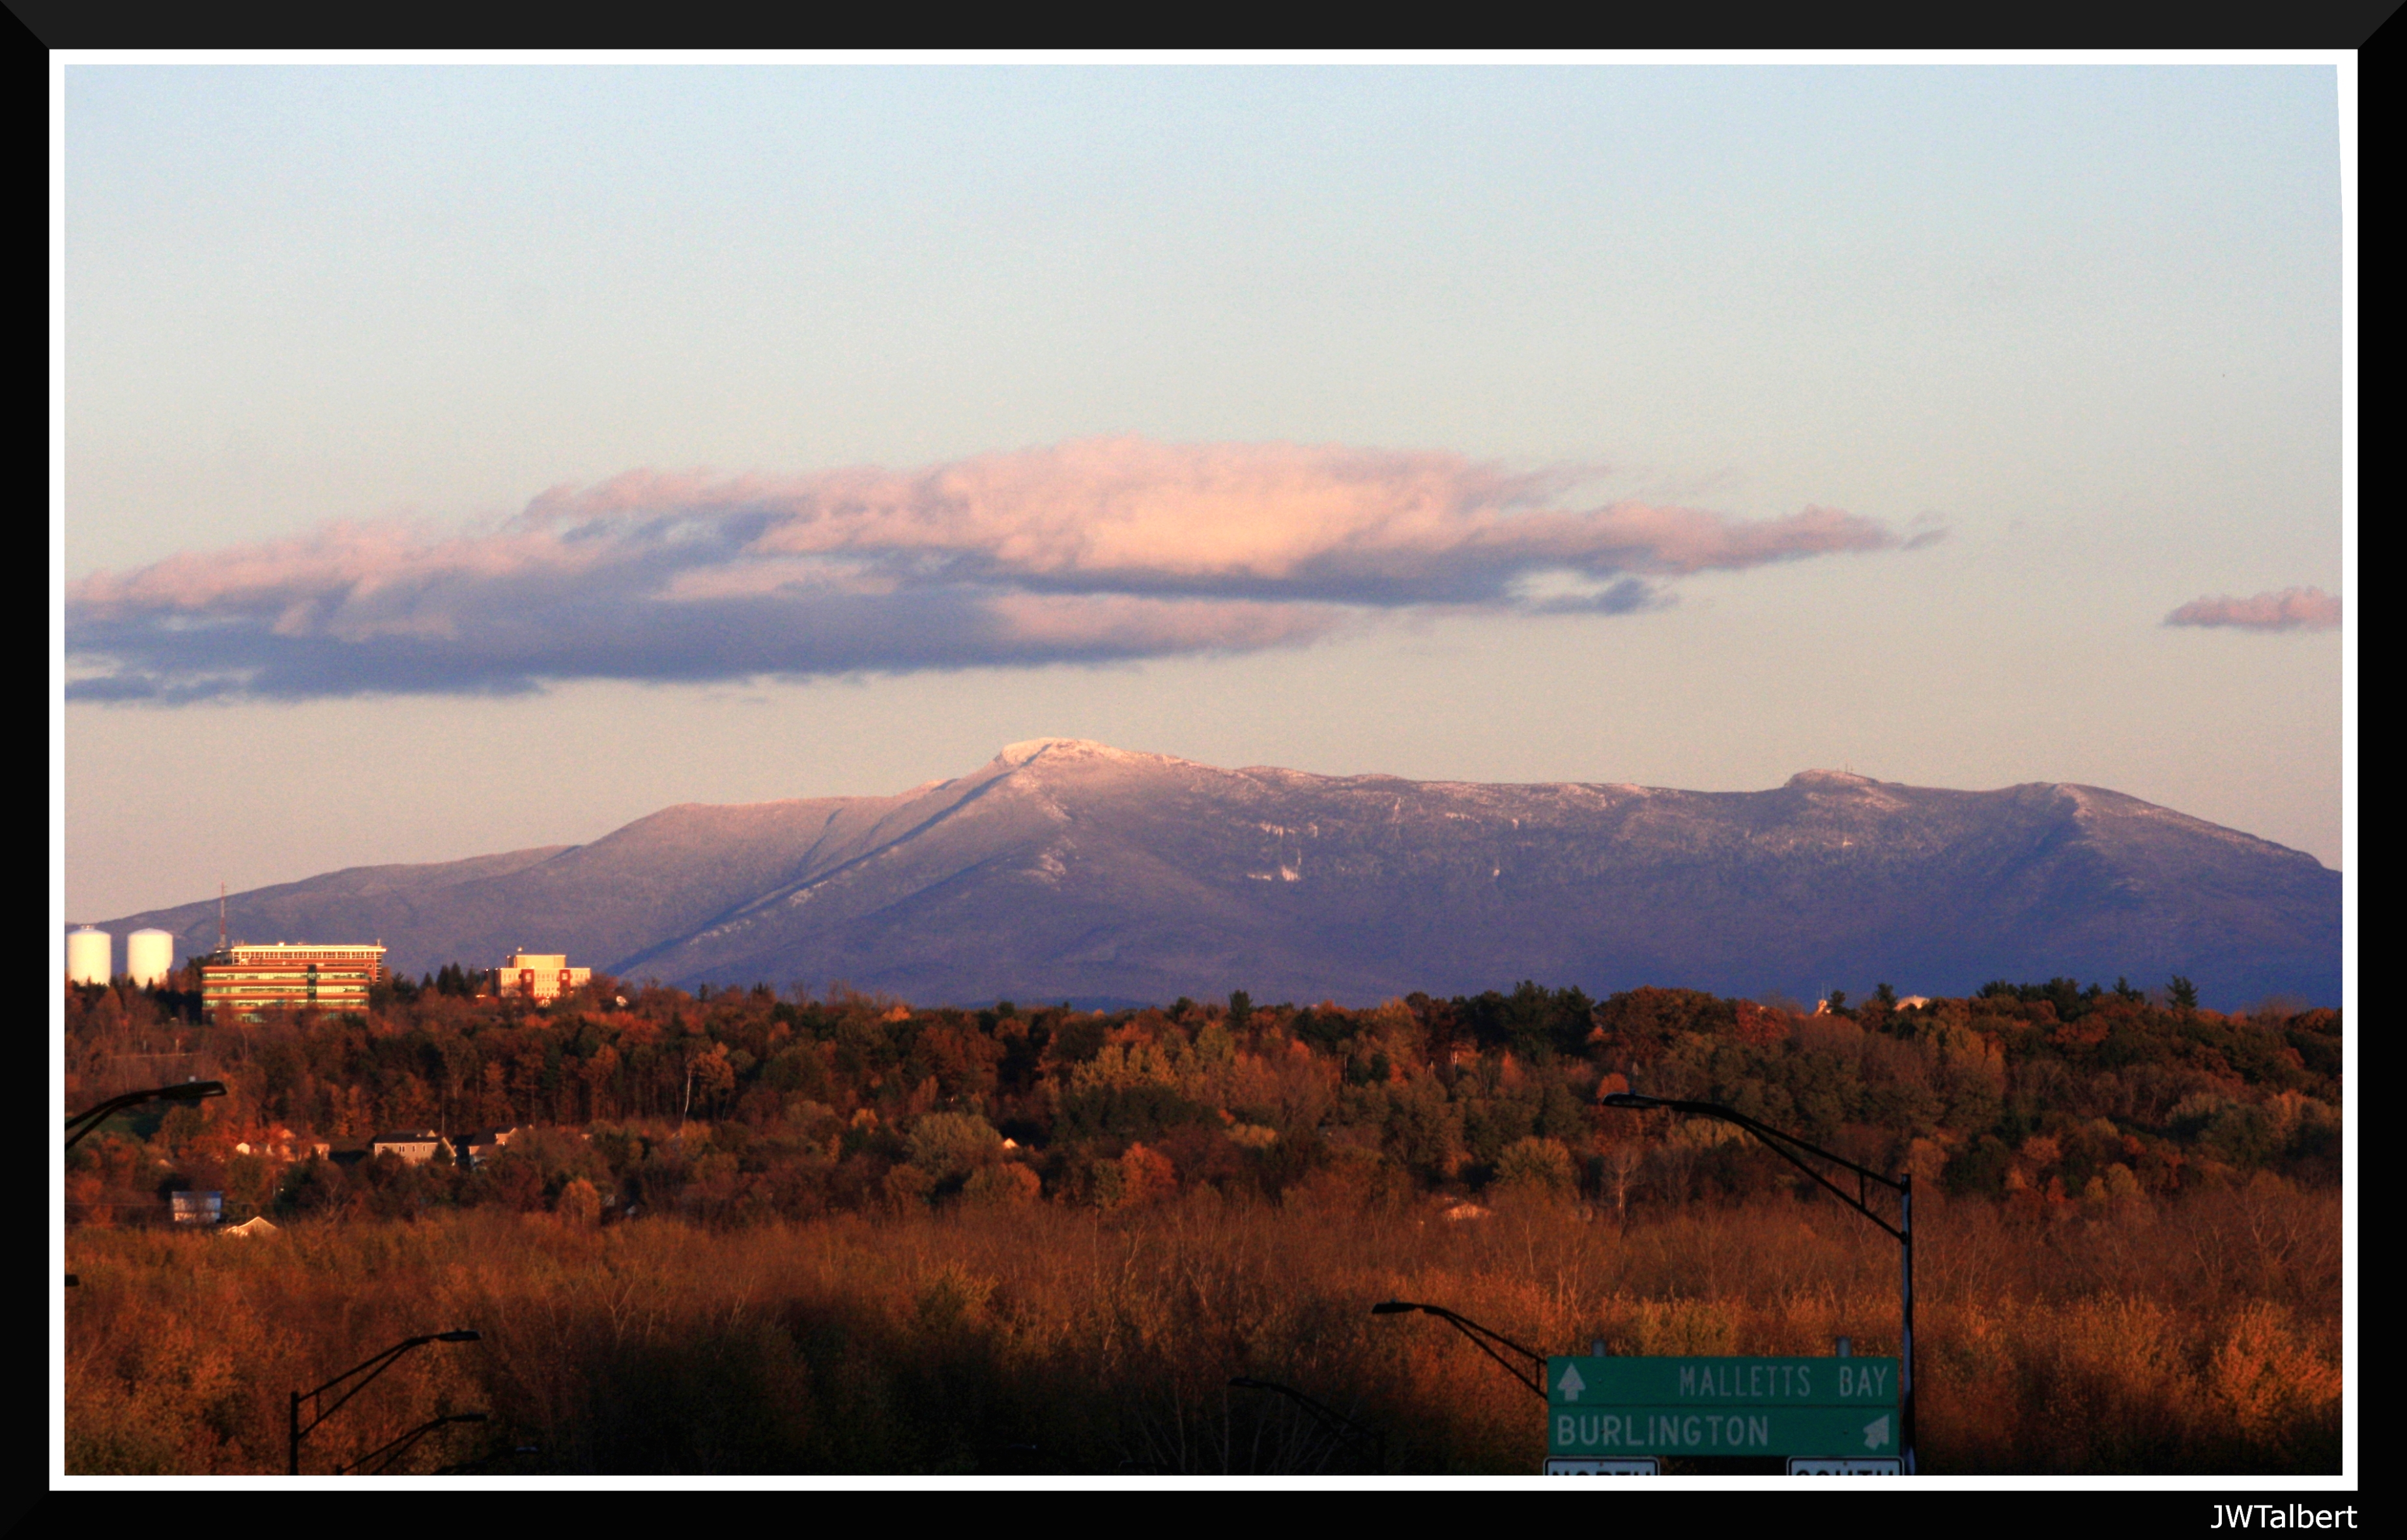 Early Mt Mansfield Snows